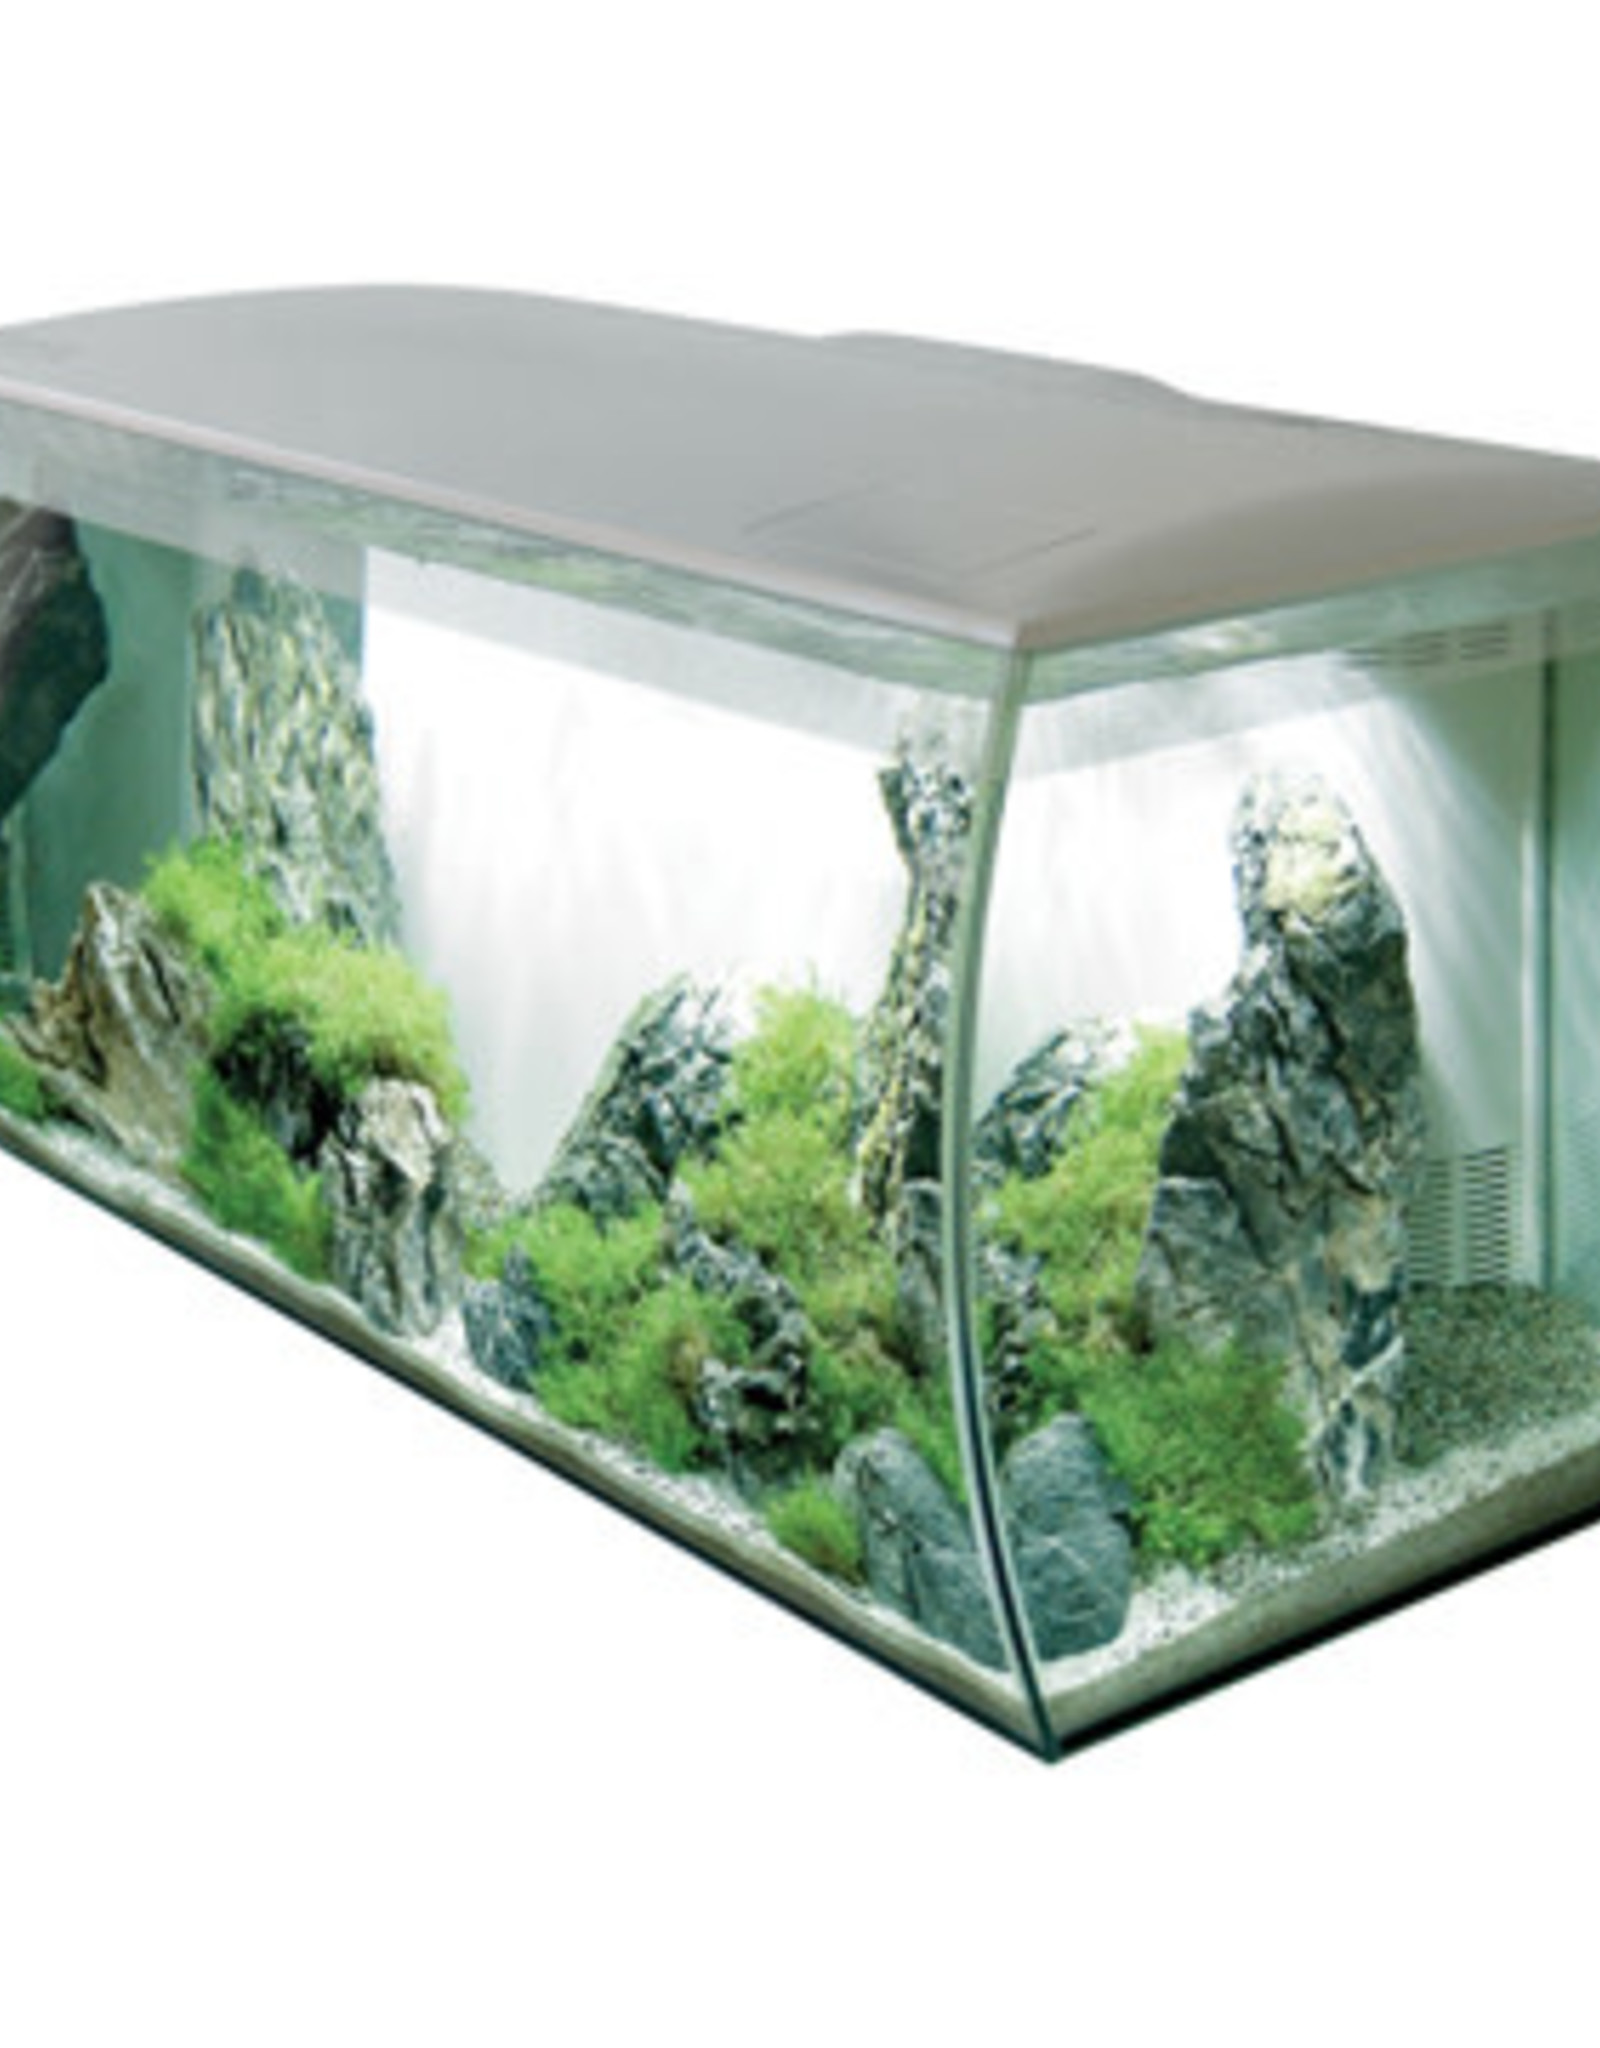 Fluval Sea Fluval FLEX Aquarium Kit - White - 123 L (32.5 US Gal)